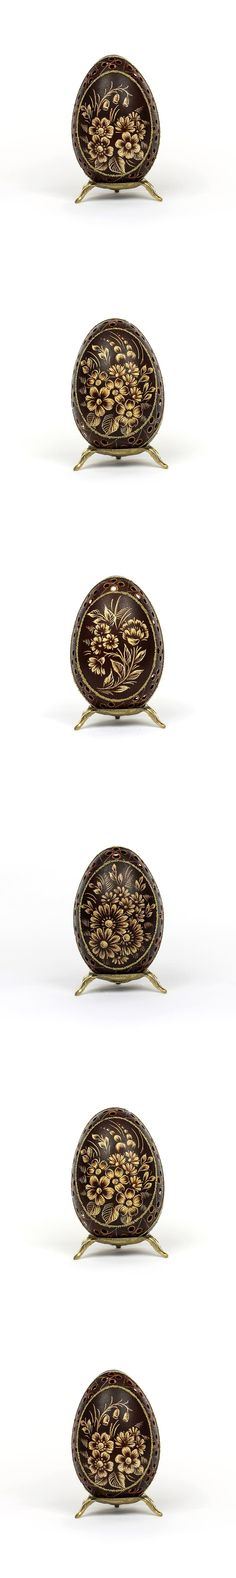 Polish Easter Eggs - kraszanki/pisanki (stratched eggs)